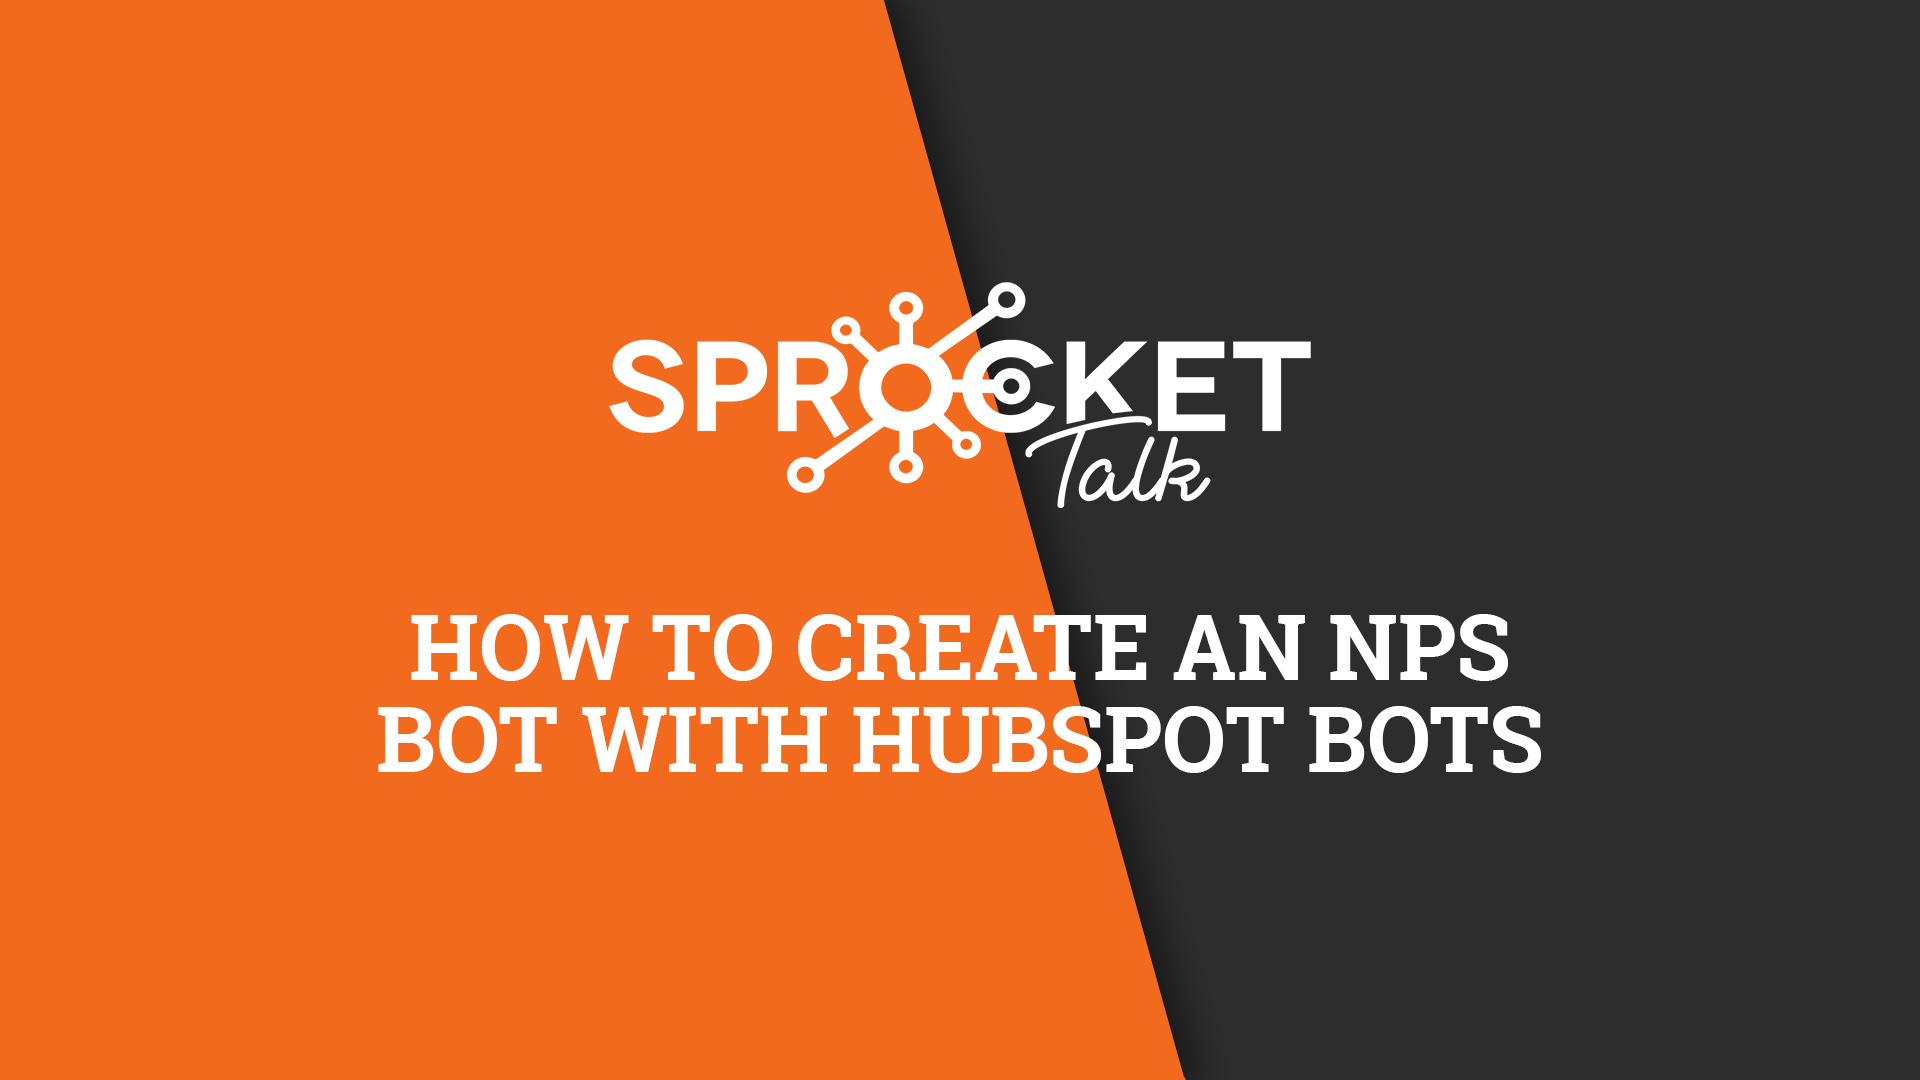 How to create an NPS Bot with HubSpot Bots